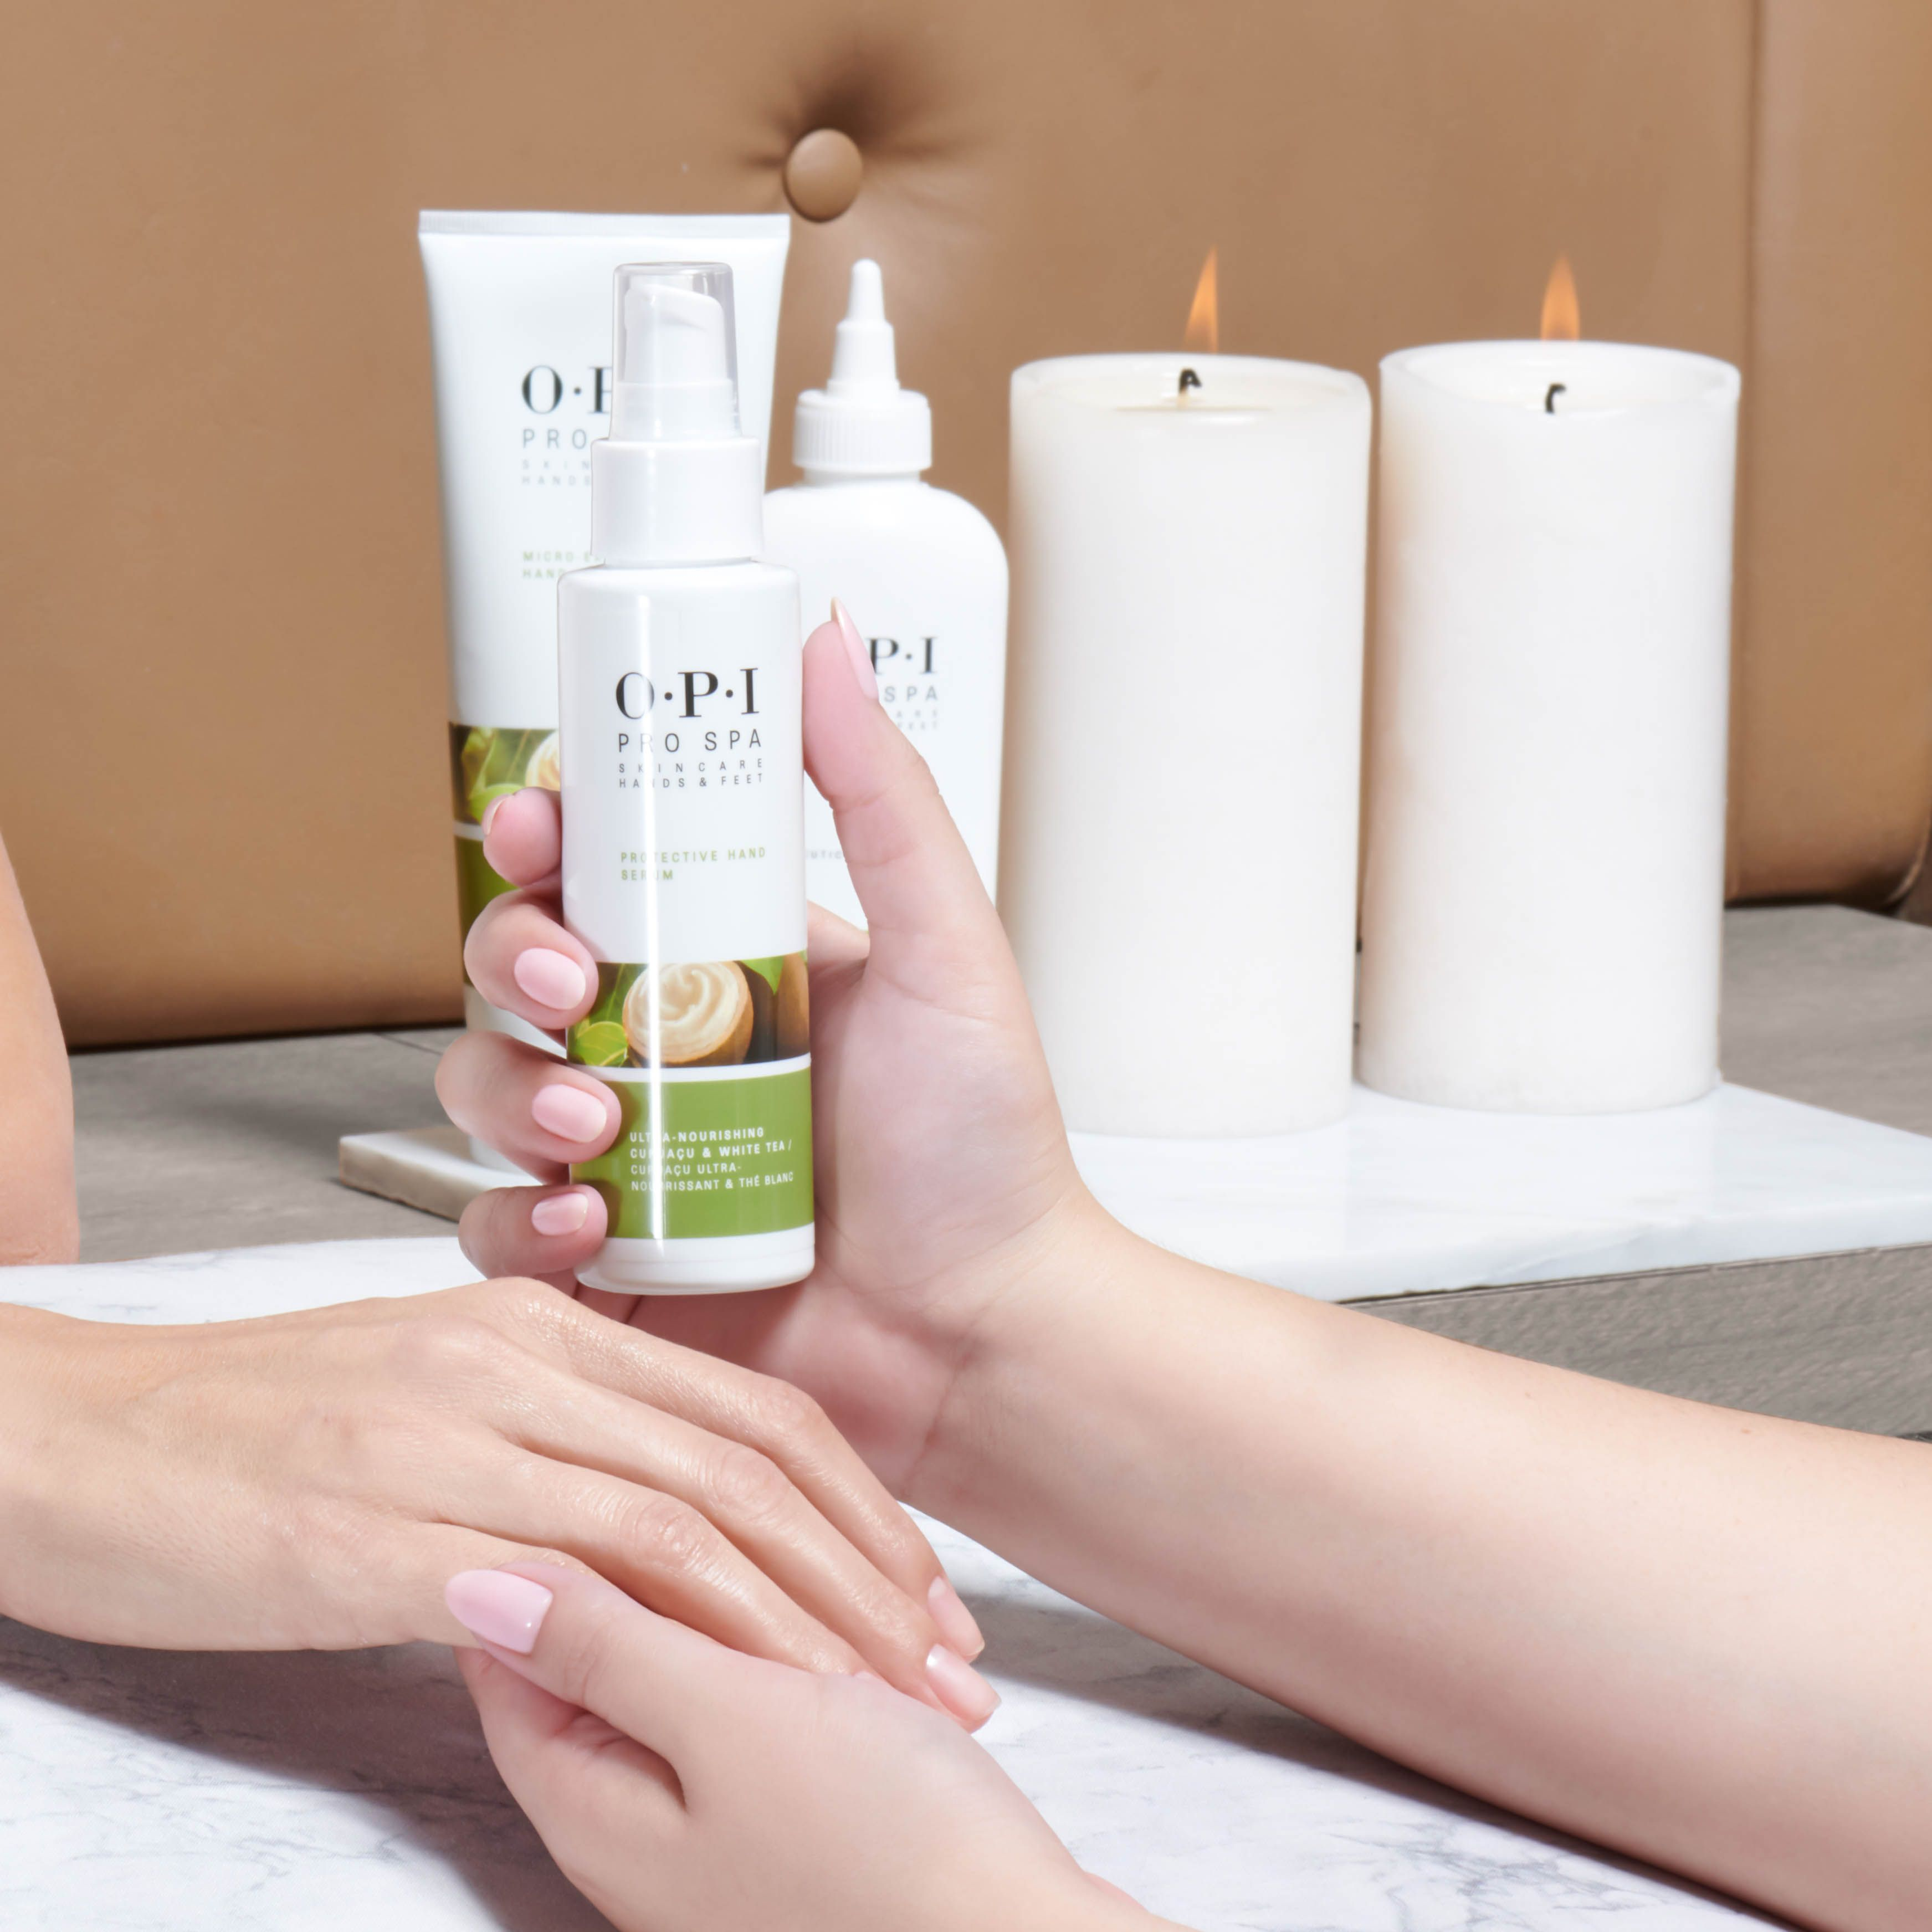 Enjoy The Opiprospa Protective Hand Serum During Every Manicure Service And Your Hands Will Be Sure To Than Long Lasting Nail Polish Spa Manicure Skin So Soft